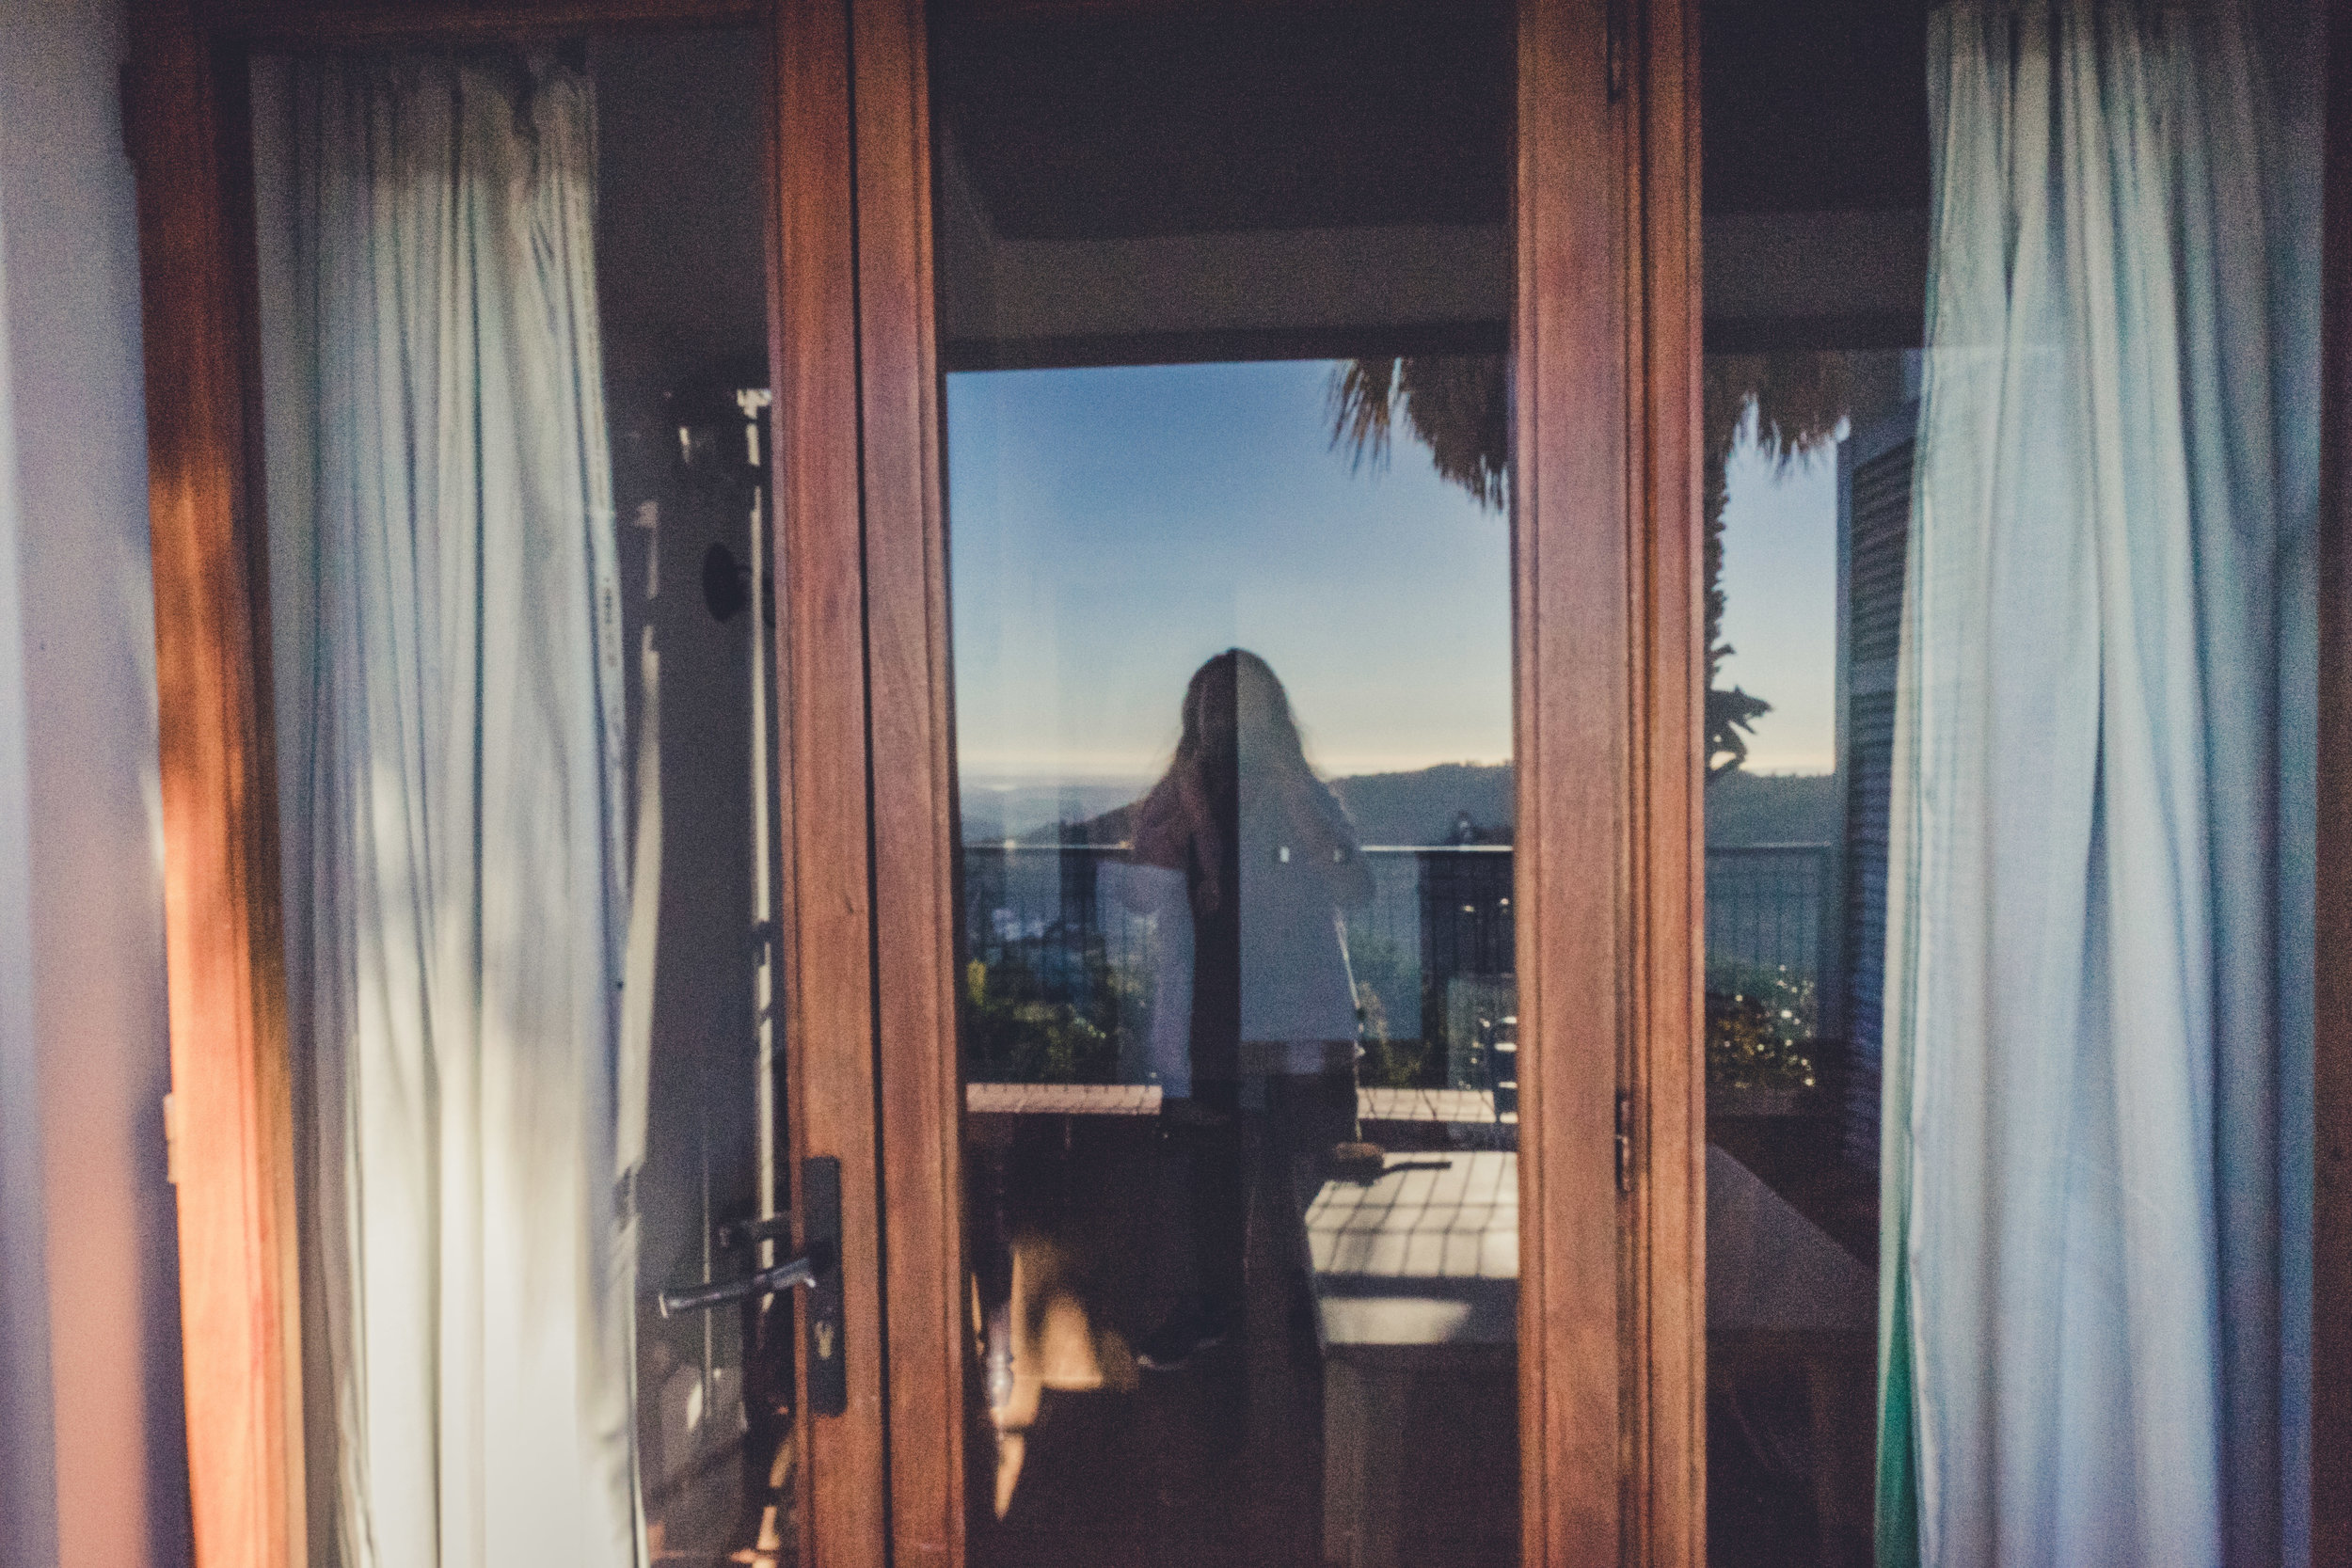 estalagem abrigo da montanha monchique portugal. view from the room. room with a view. great view from the room. out on the balcony.jpg